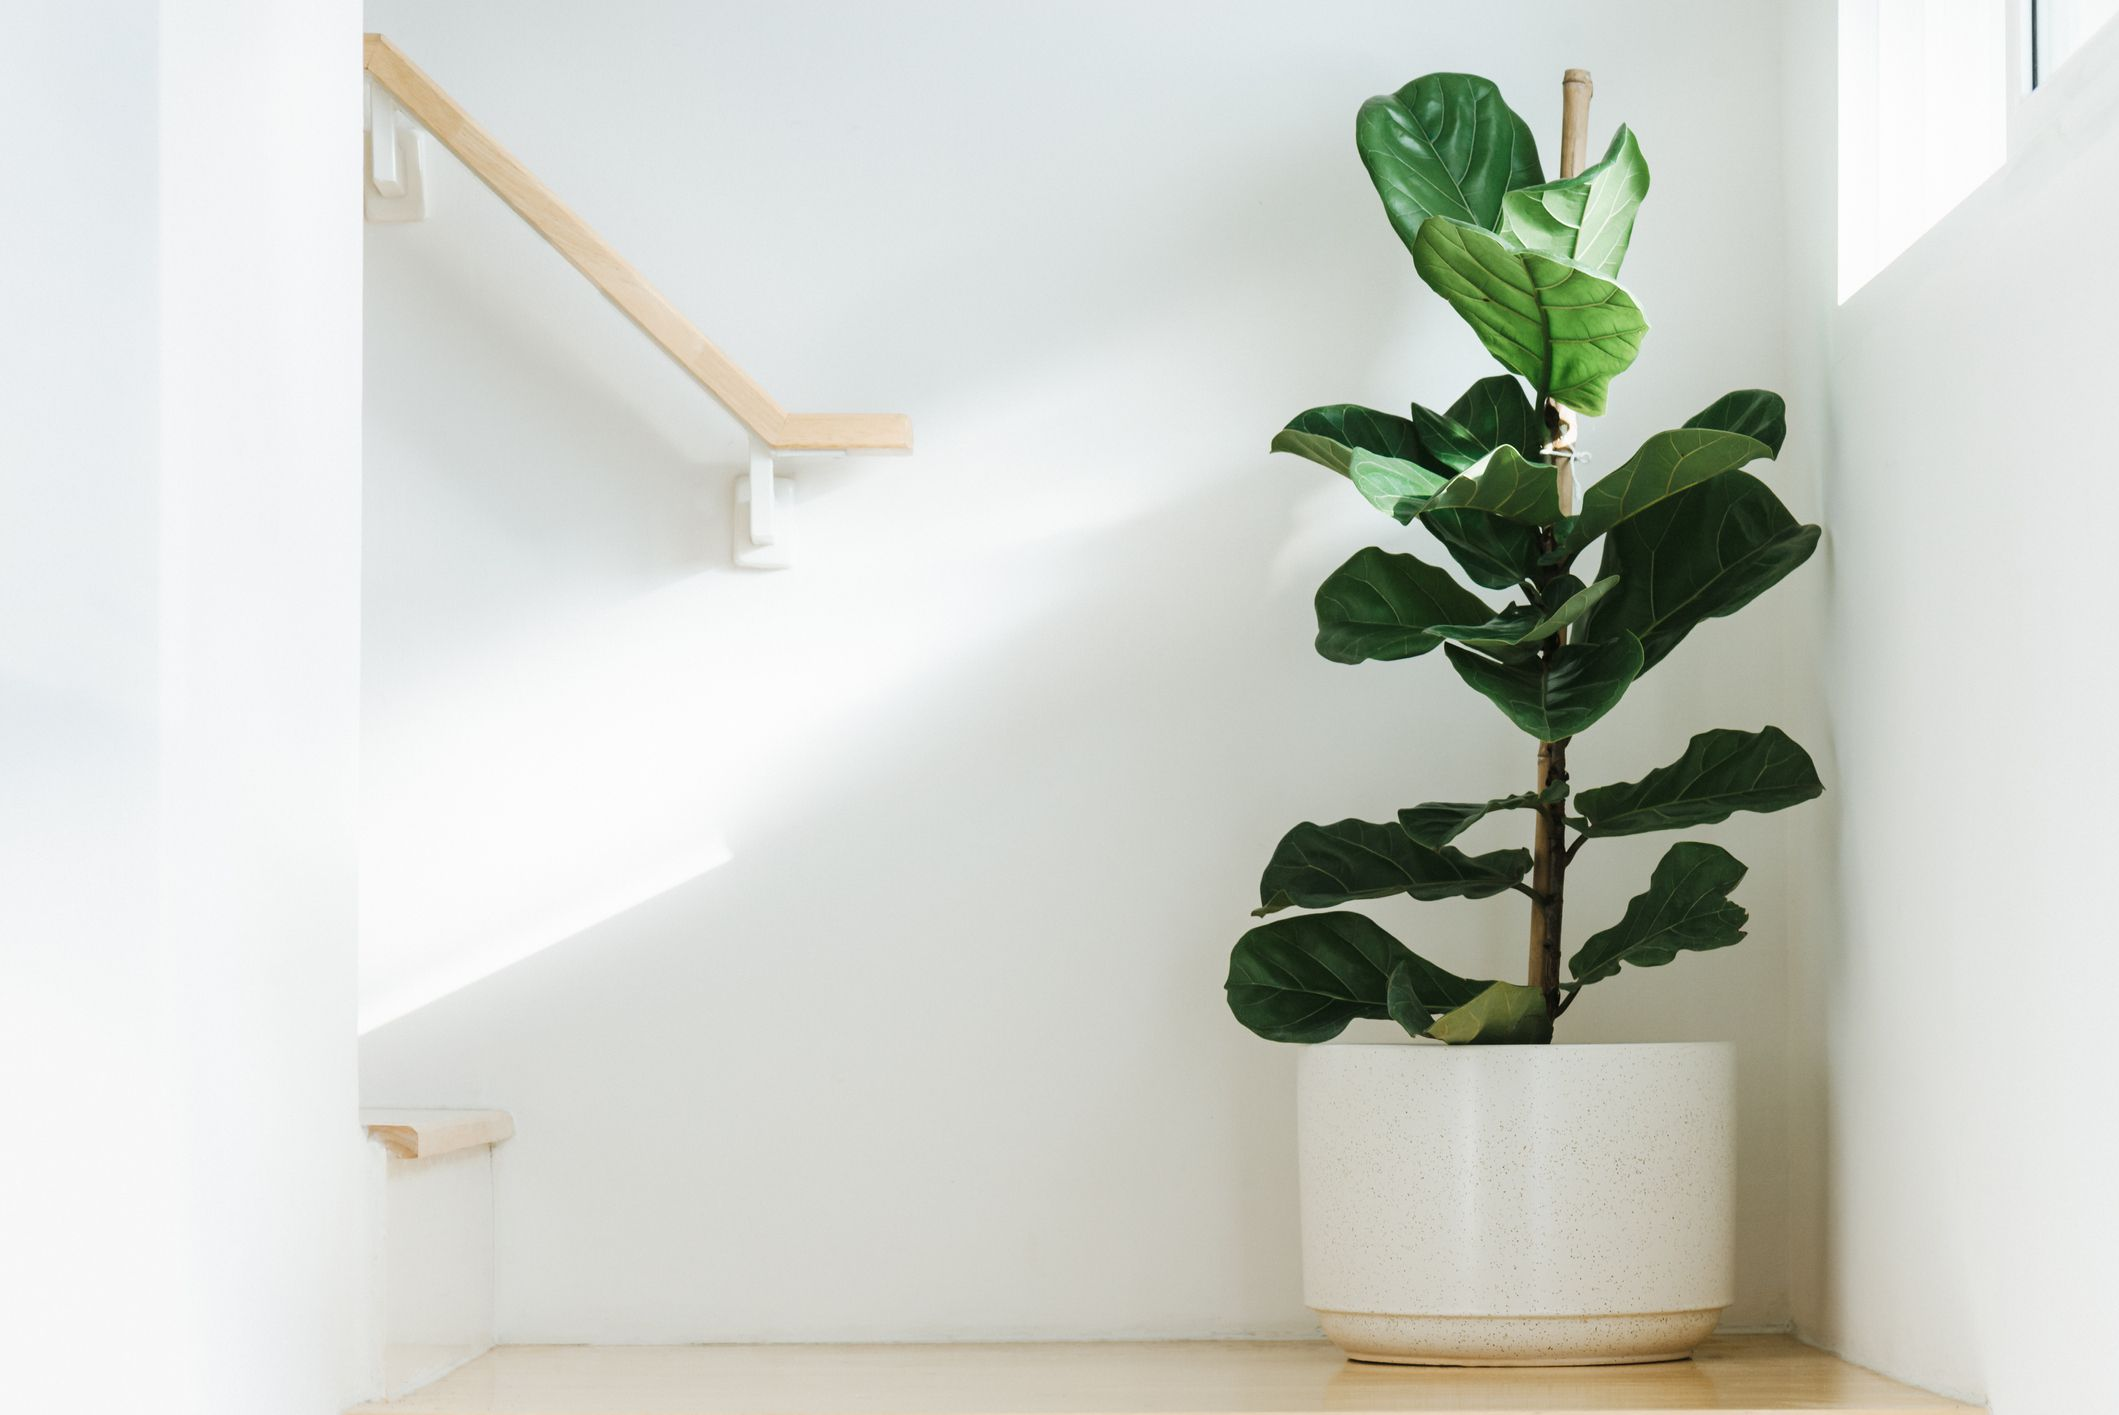 Fiddle leaf fig tree (Ficus lyrata) in white planter with sun coming through the window on the right